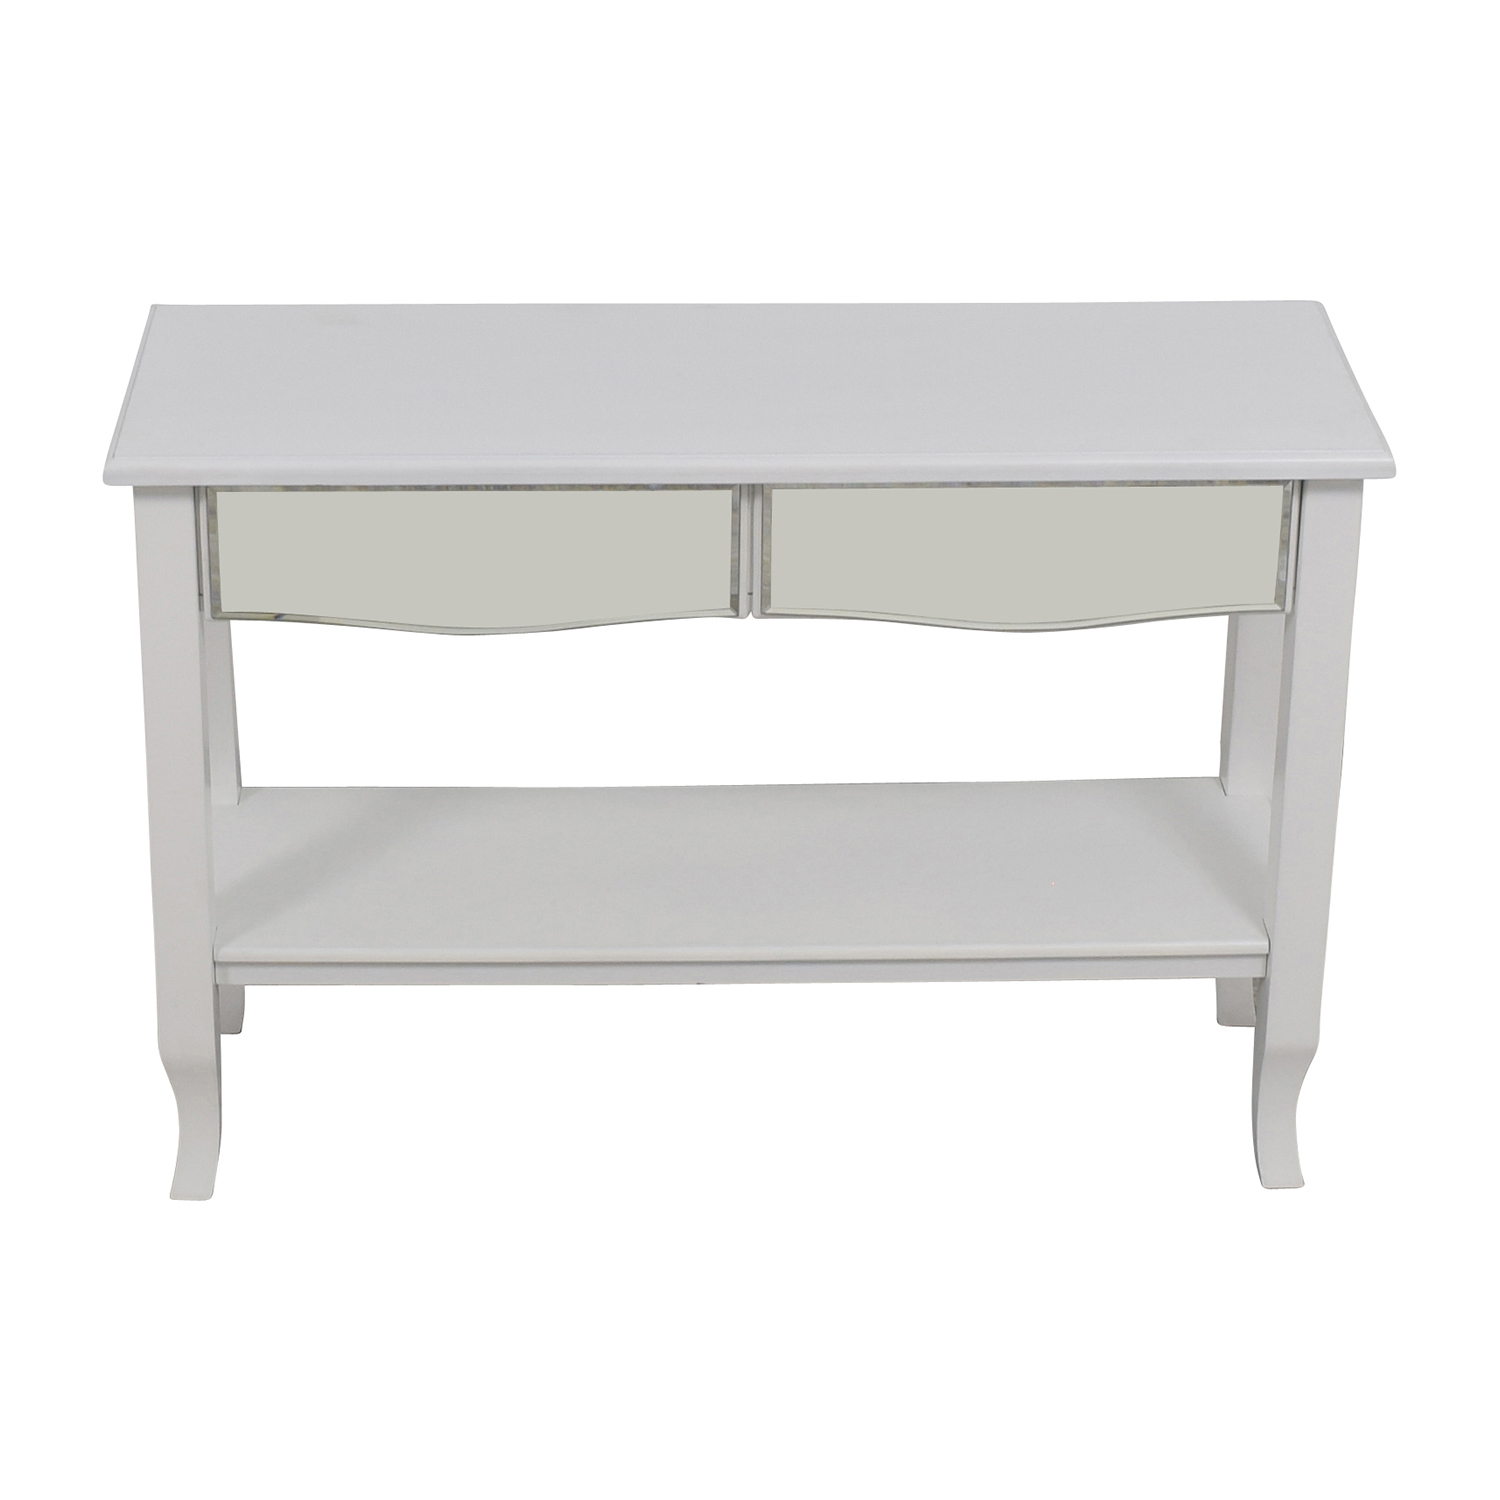 buy White Mirrored Console Table with Two-Drawers